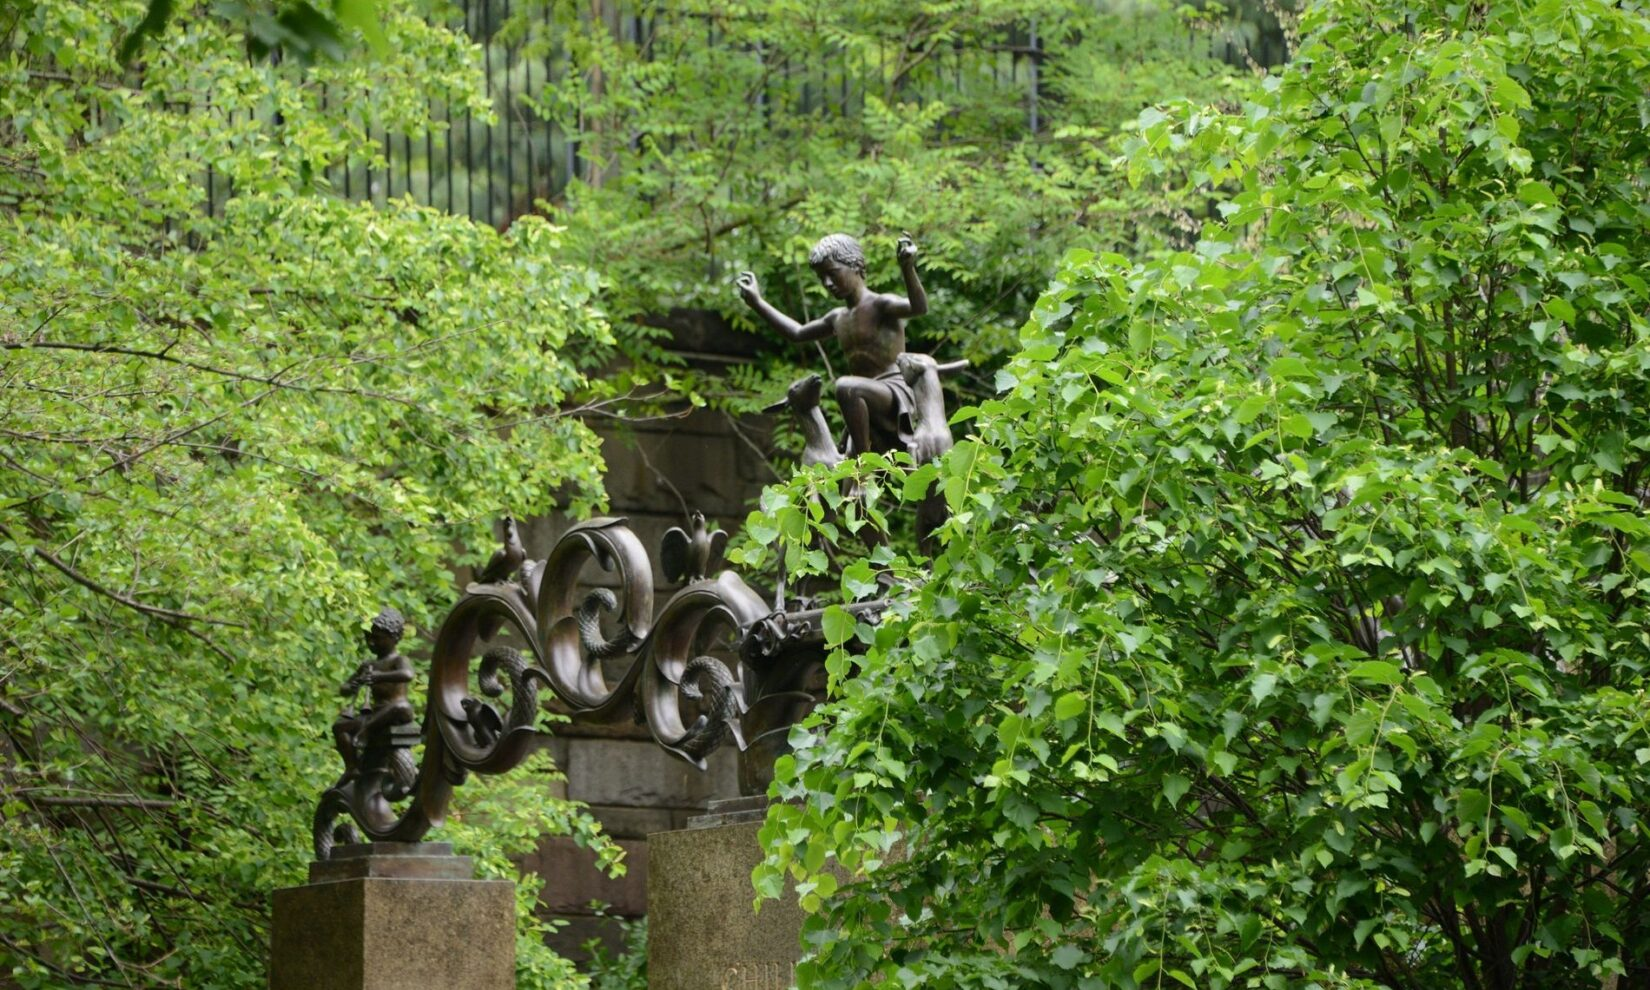 The figures at the top of the gate shown half-hidden in the neighboring tree canopy.